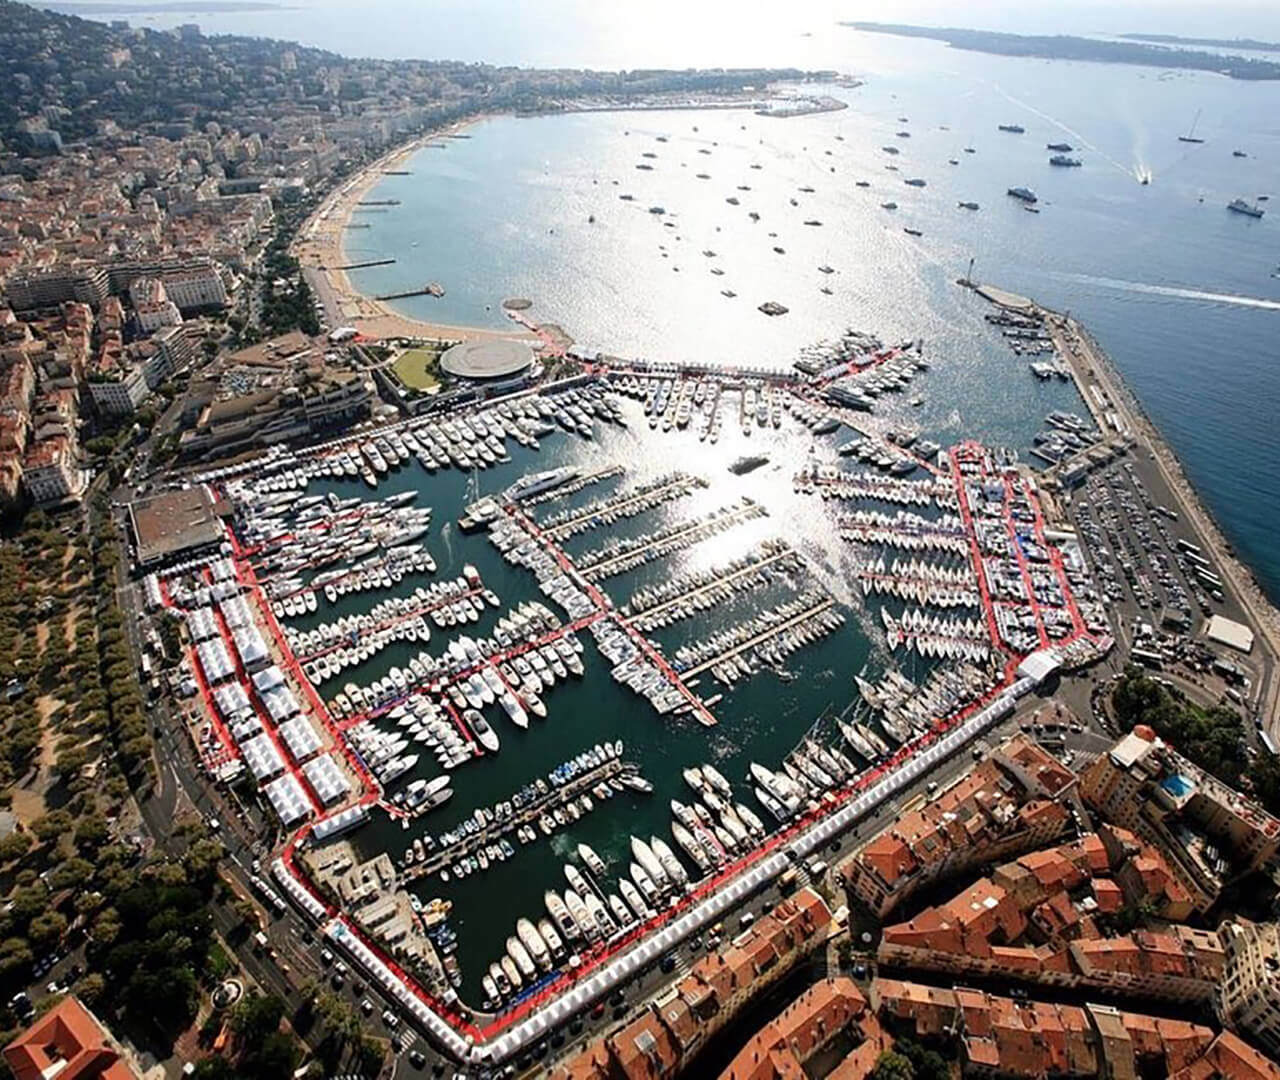 Visit Dynamiq at Cannes Yachting Festival